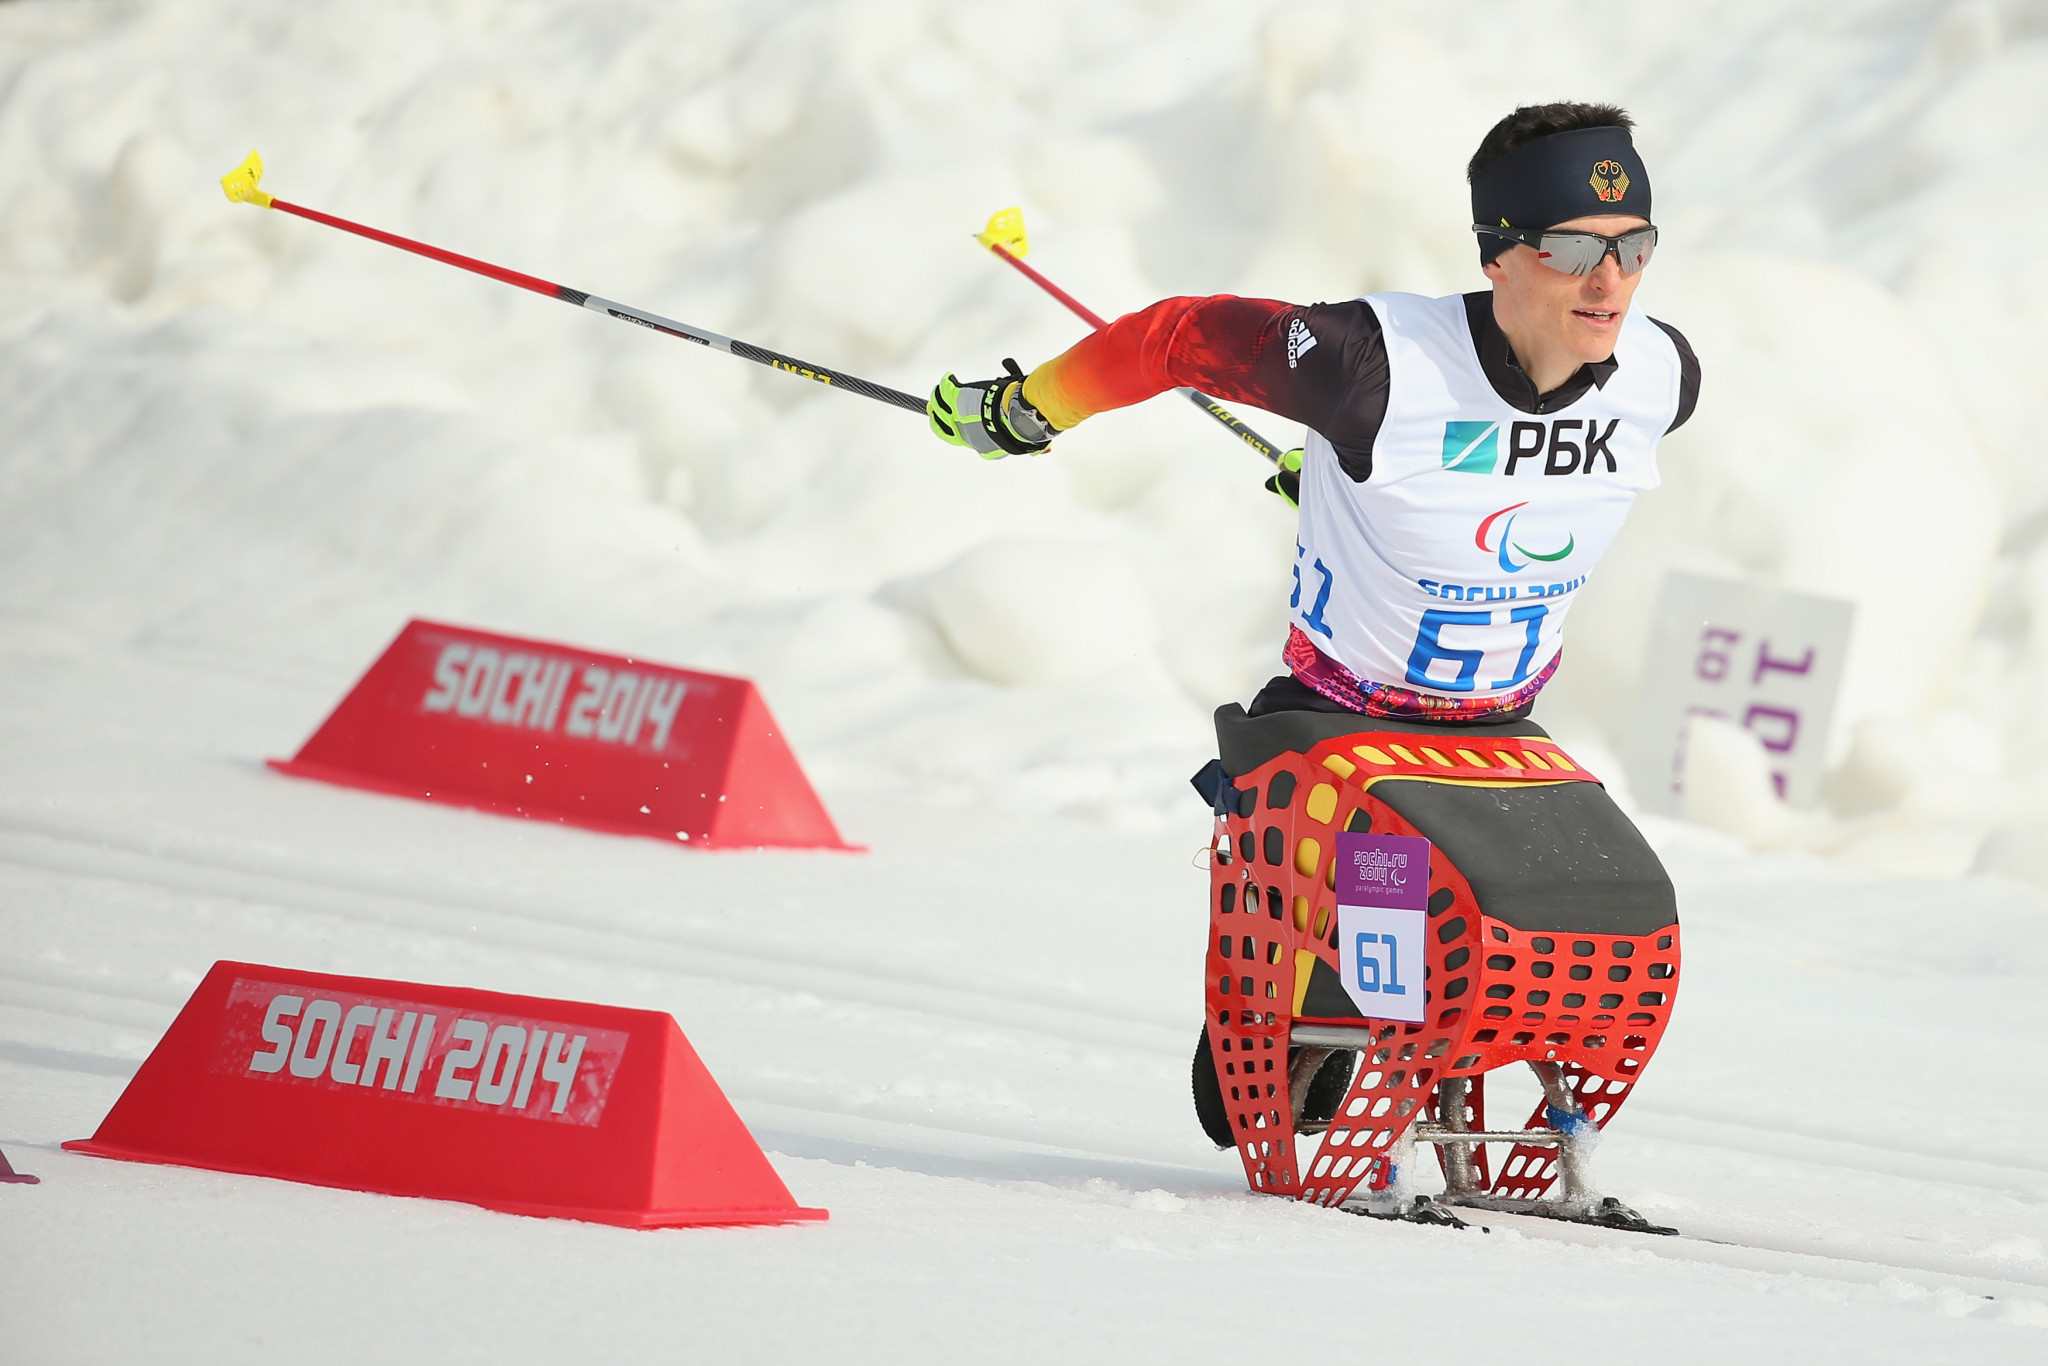 Germany's Martin Fleig is one of two world title holders taking part in the World Para Nordic Skiing World Cup ©Getty Images